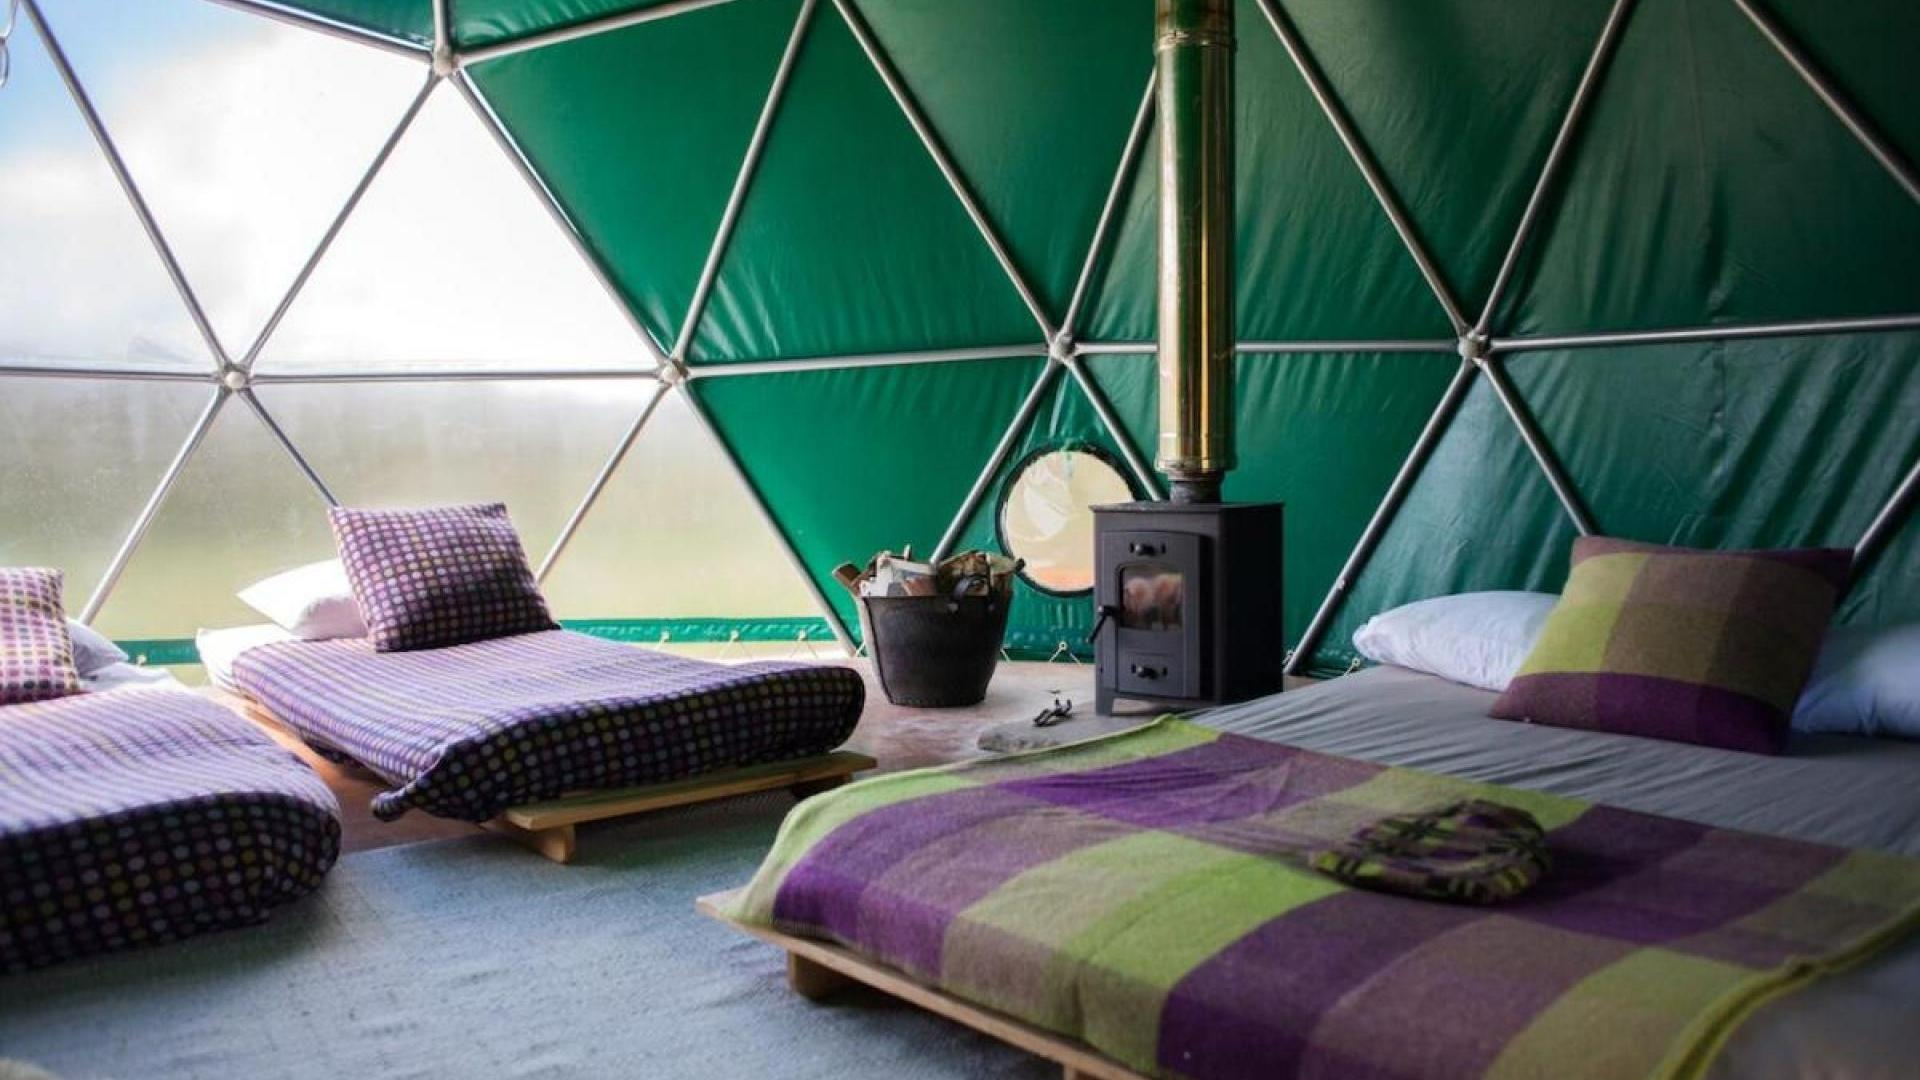 1 Bedroom Glamping/Dome in Wales, United Kingdom